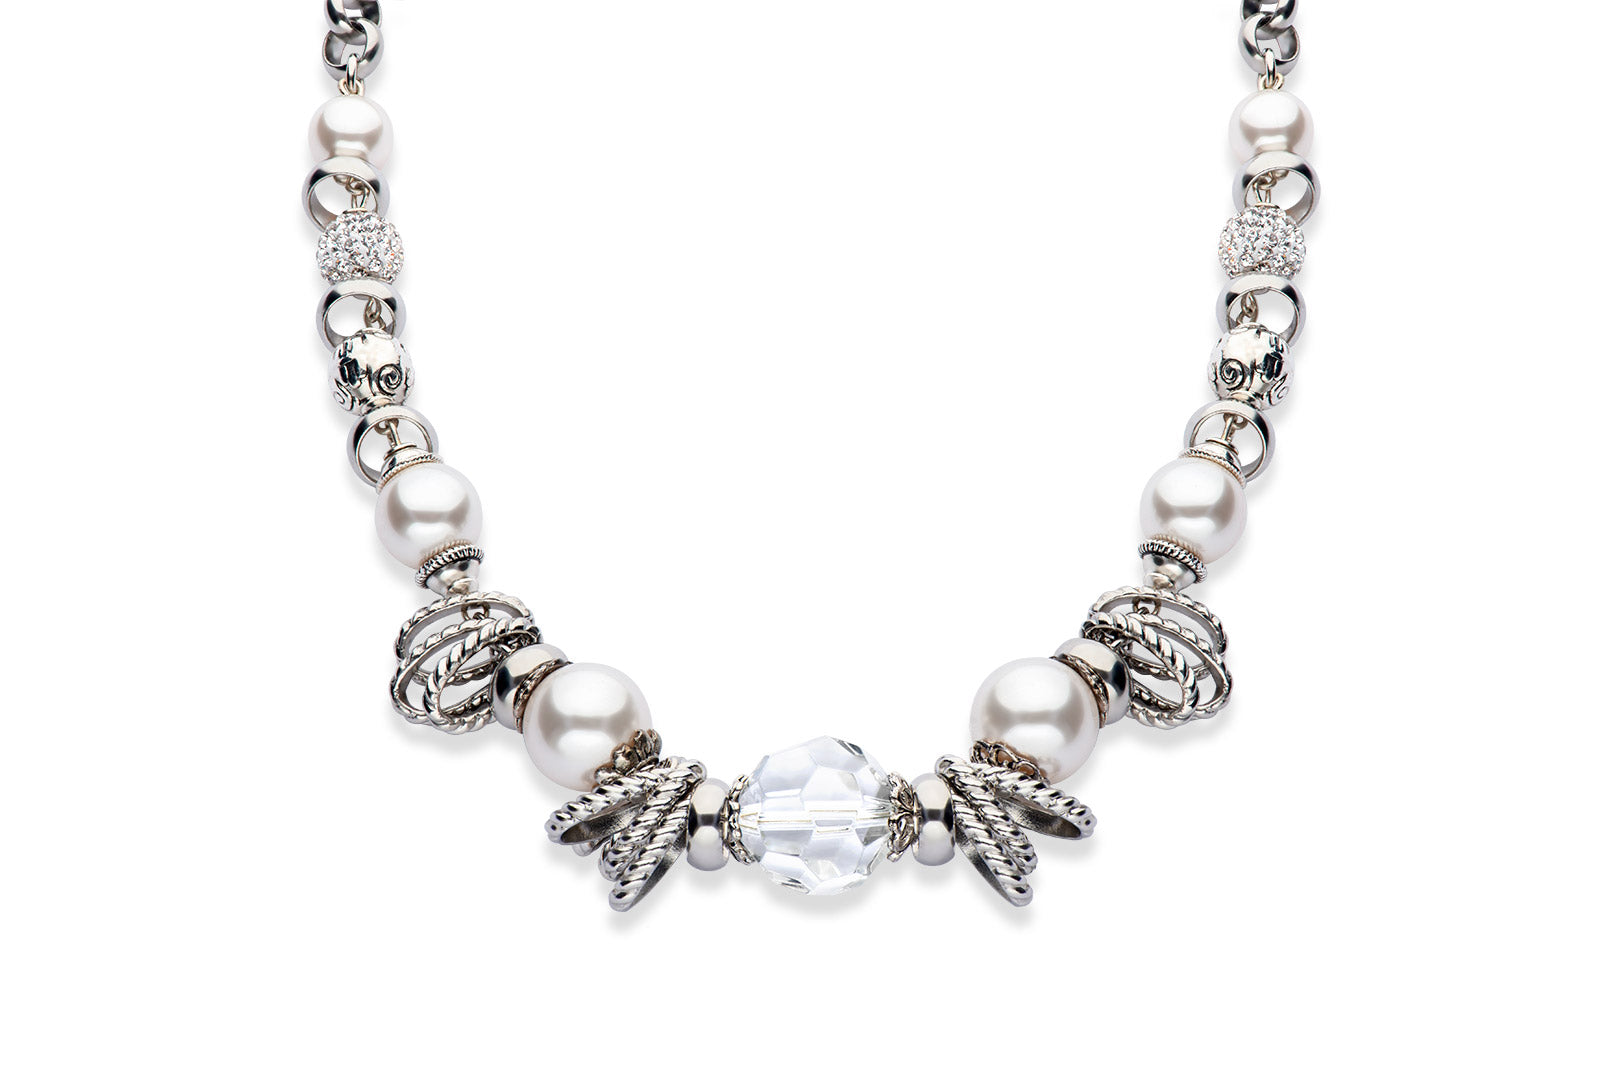 Faceted crystal and Swarovski crystal pearl necklace